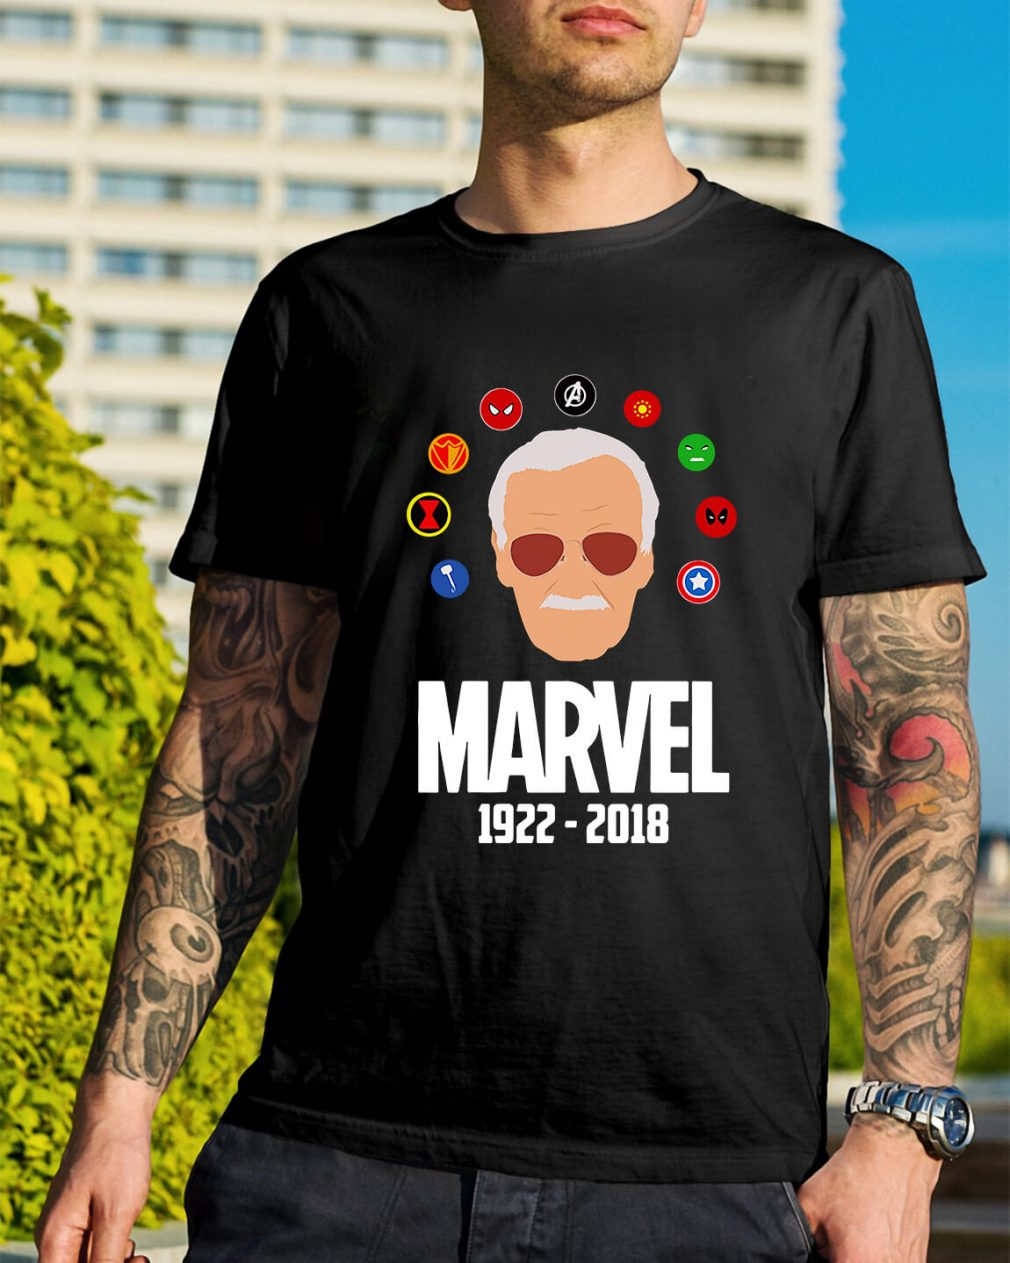 Rip Stan Lee 1922 - 2018 with all Marvel Hero shirt